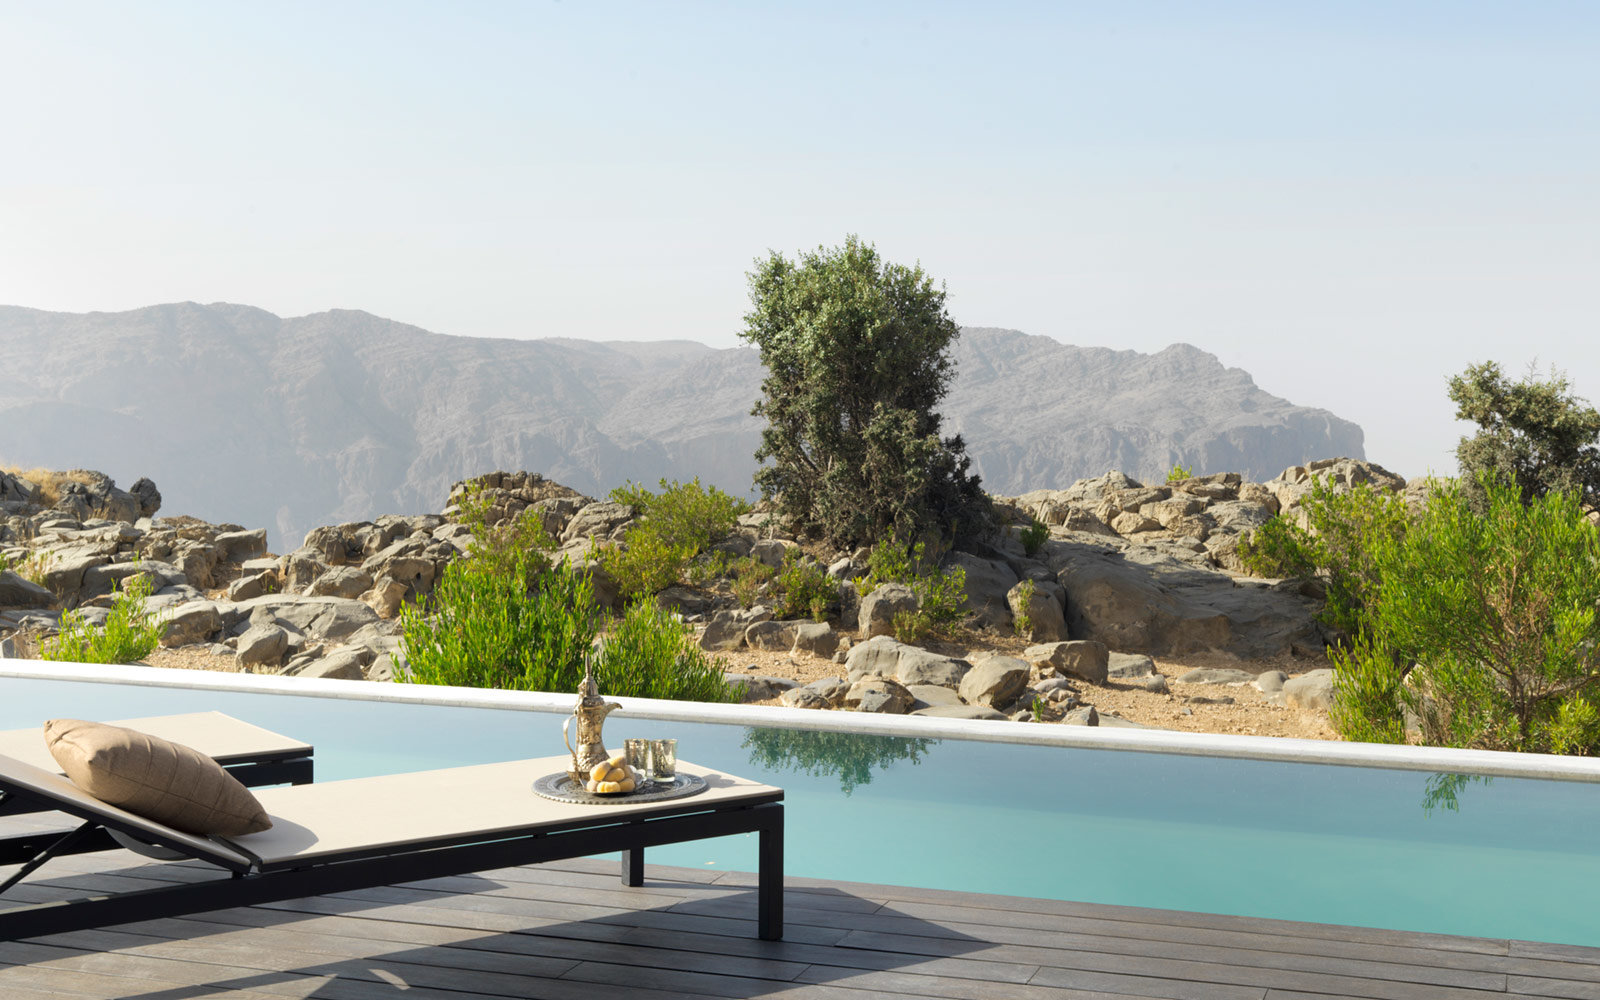 Anantara Jabal Al Akhdar Resort